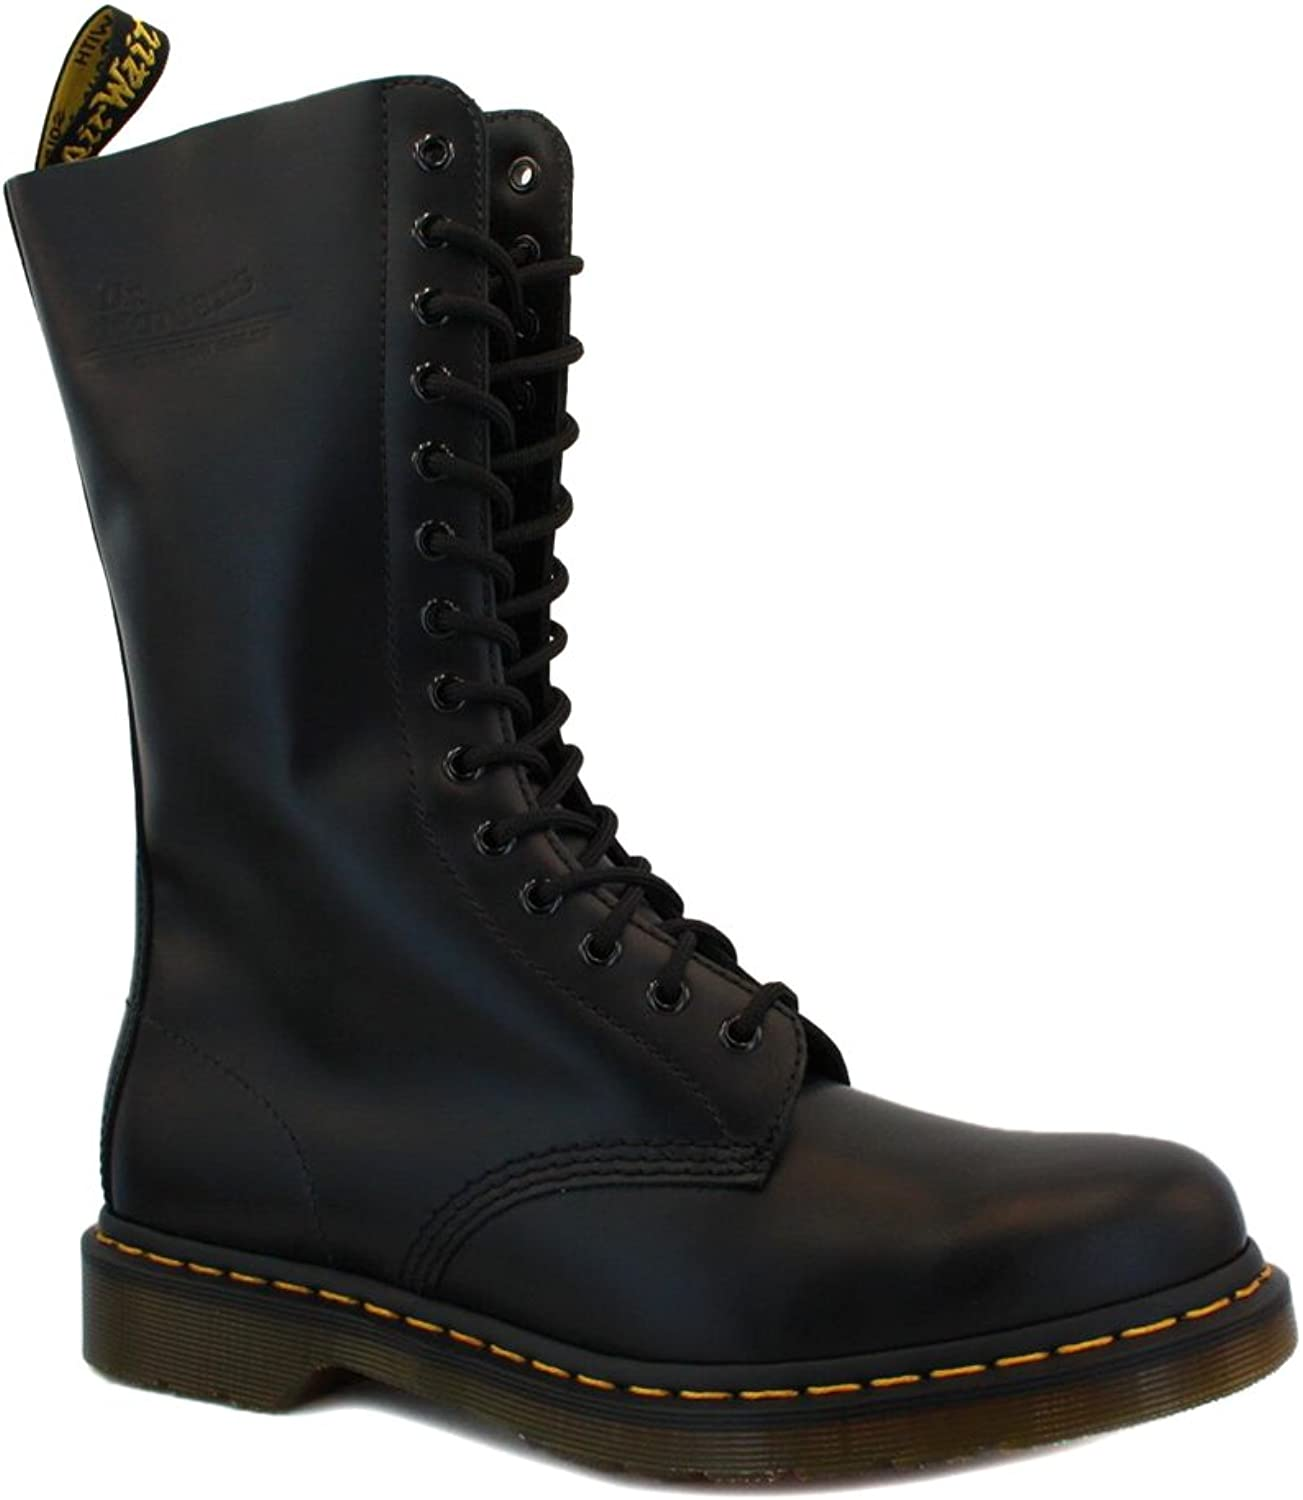 Dr Martens 1914 Unisex Laced Laced Laced Leather Boots svart - 9  inget minimum